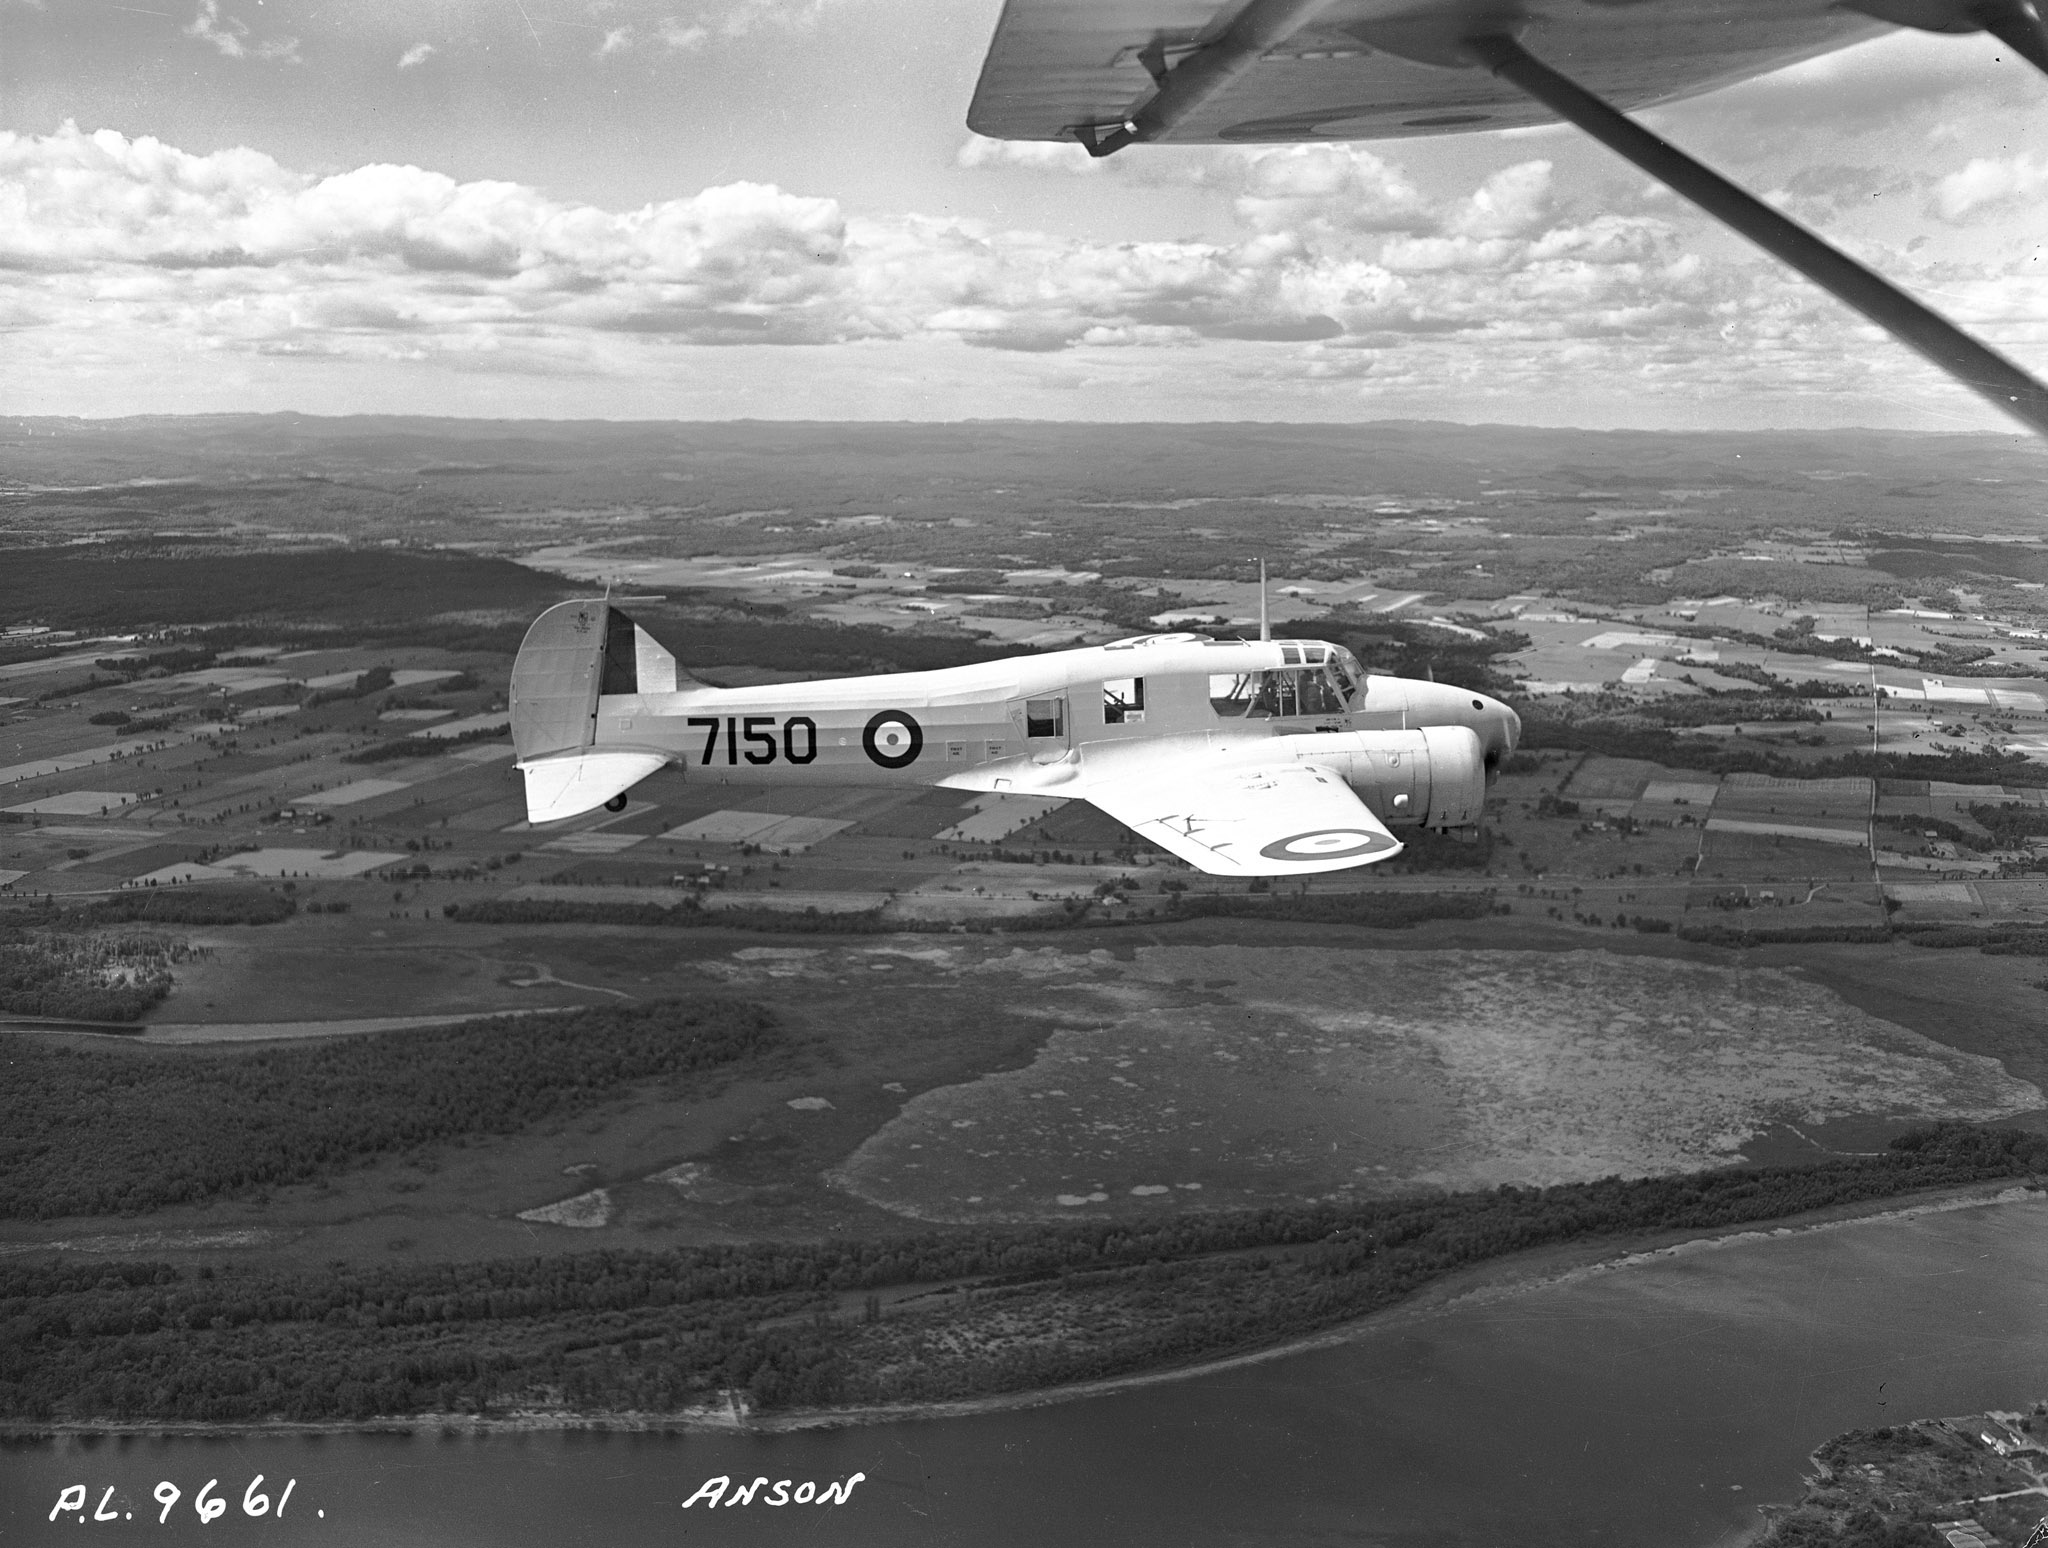 Under the British Commonwealth Air Training Plan, RCAF Avro Anson Mark II twin-engine aircraft such as No. 7150, photographed on August 4, 1942, introduced some 30,000 navigators, including Leading Aircraftman Kenneth Spooner, and wireless operators to their jobs in the sky at schools throughout Canada. PHOTO: DND Archives, PL-9661